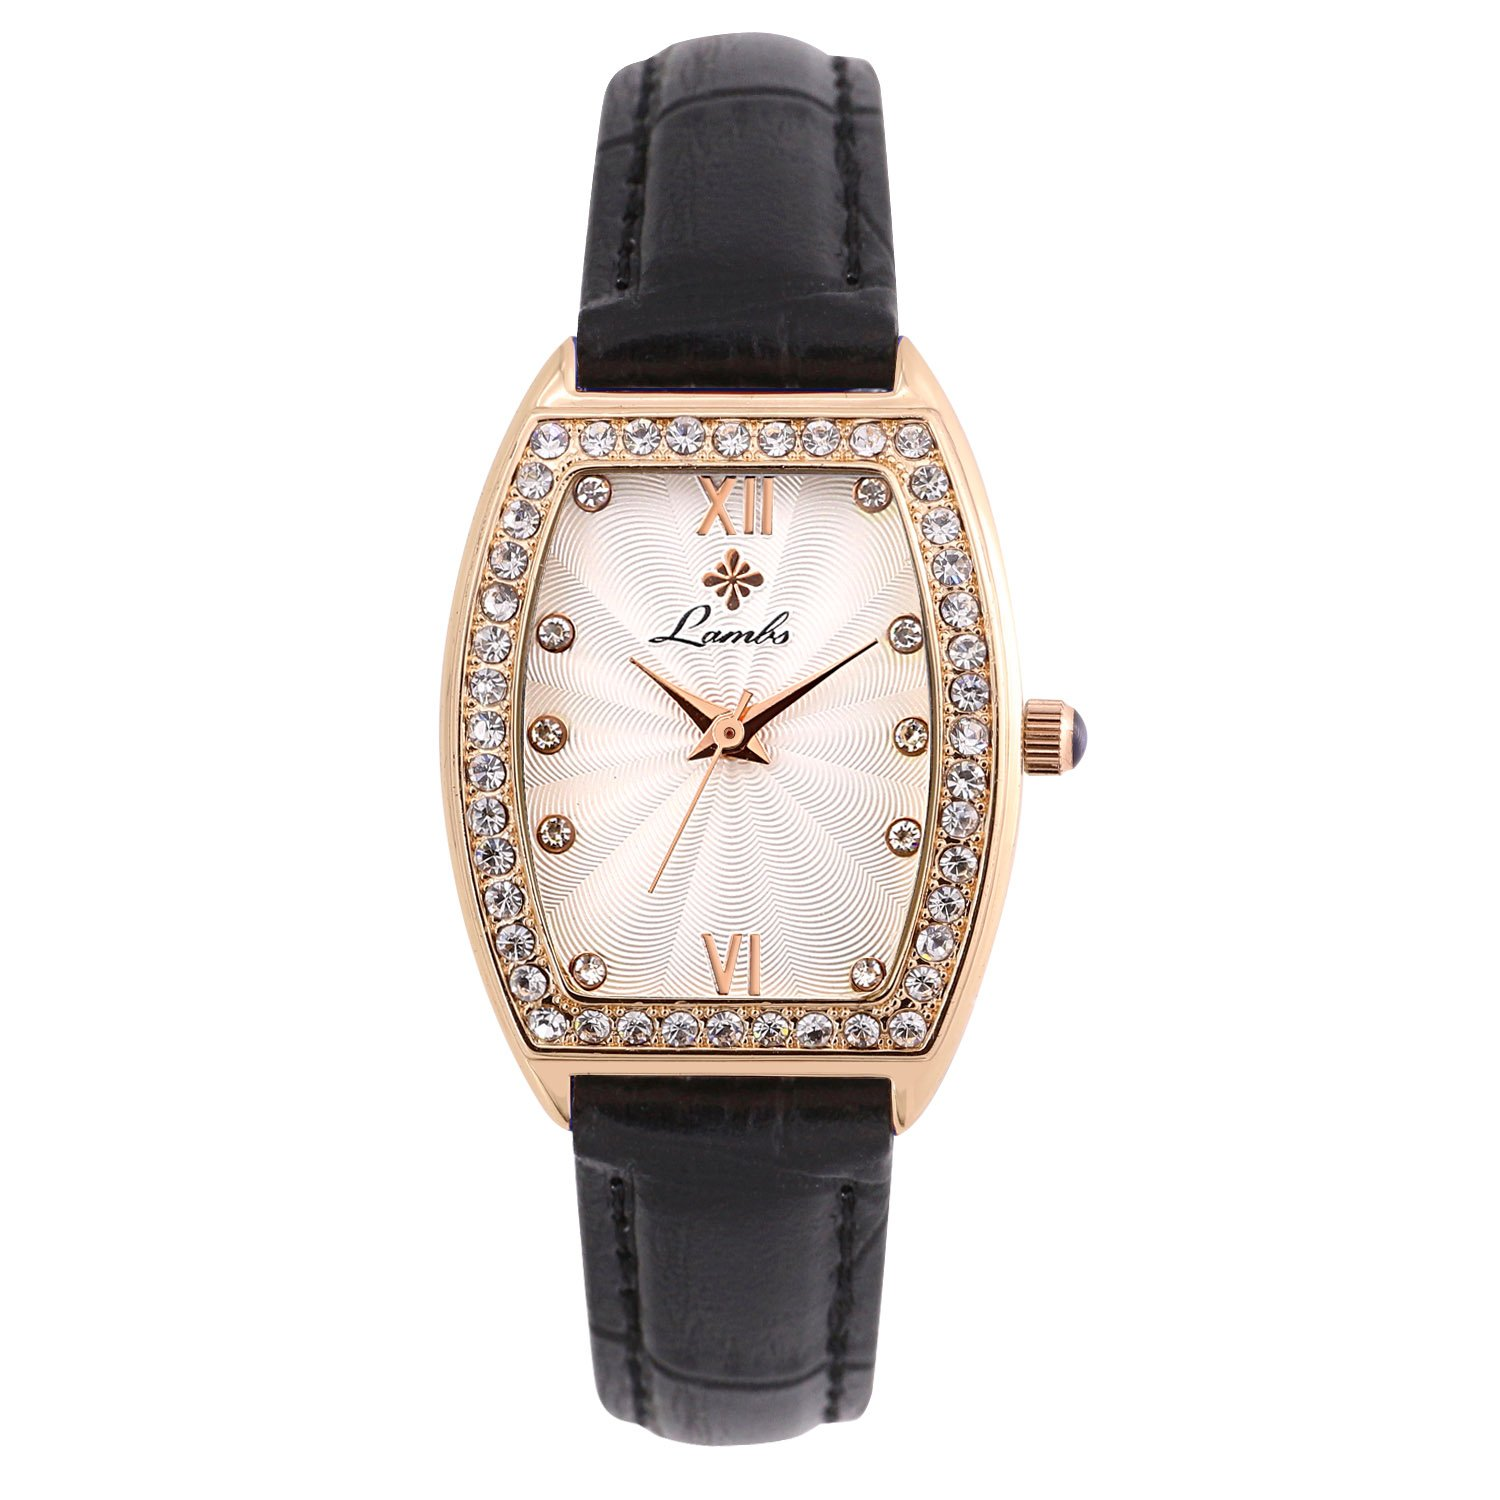 Ladies Fashion Watch, Womens Rose Gold Rectangular Diamond CaseWaterproof Quartz Elegant Casual Wrist Watches for Girls with Comfortable Genuine Leather Band (Black)